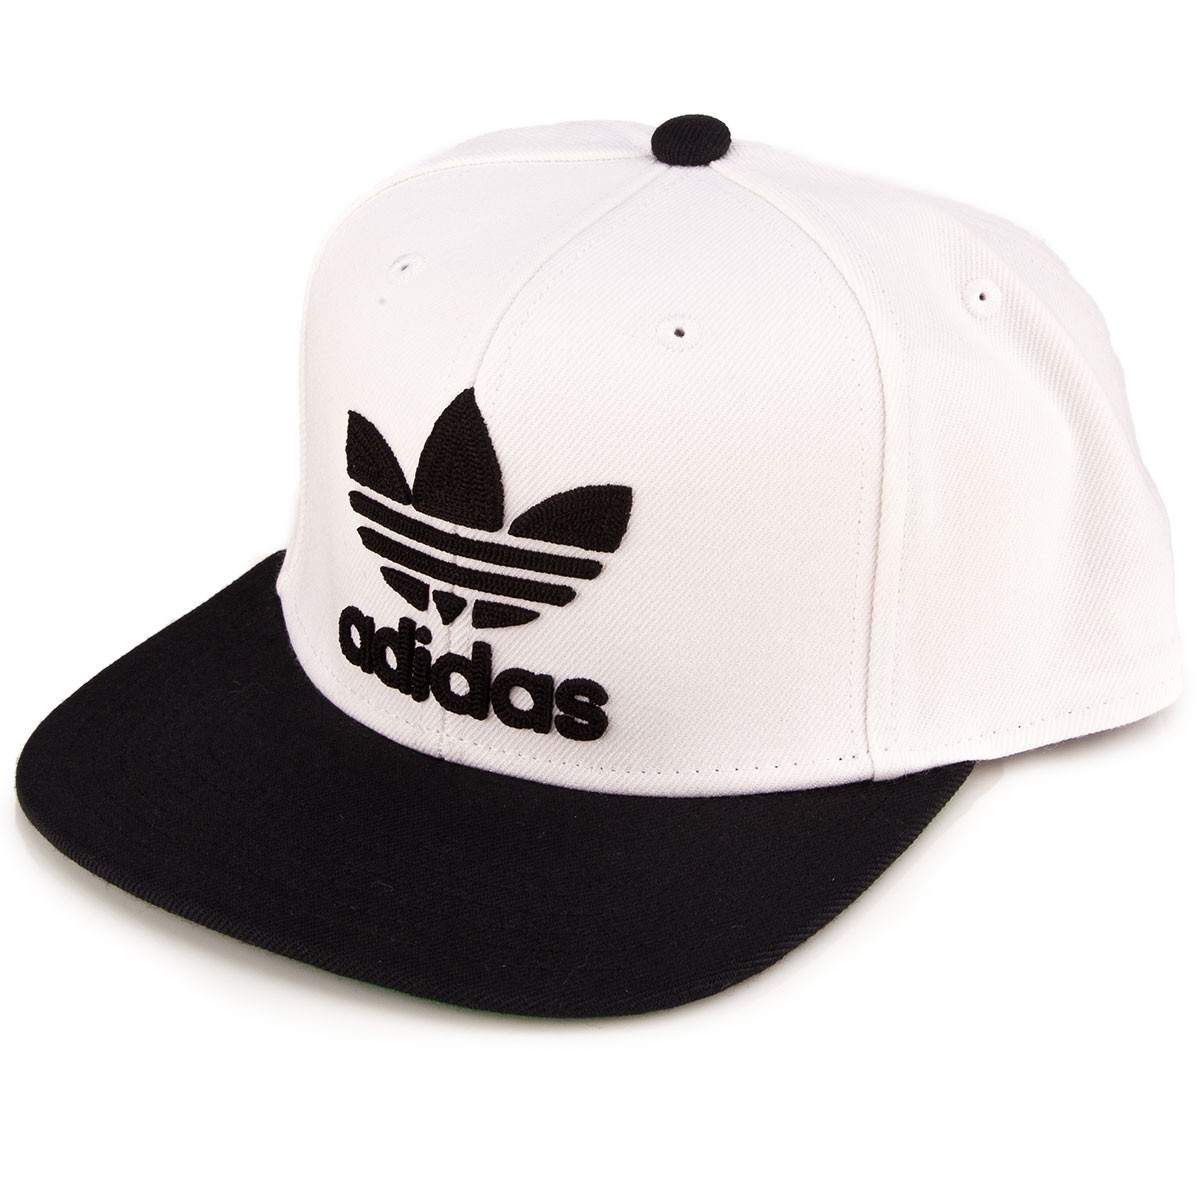 Home gt accessories gt hats gt adidas gt adidas thrasher chain snapback